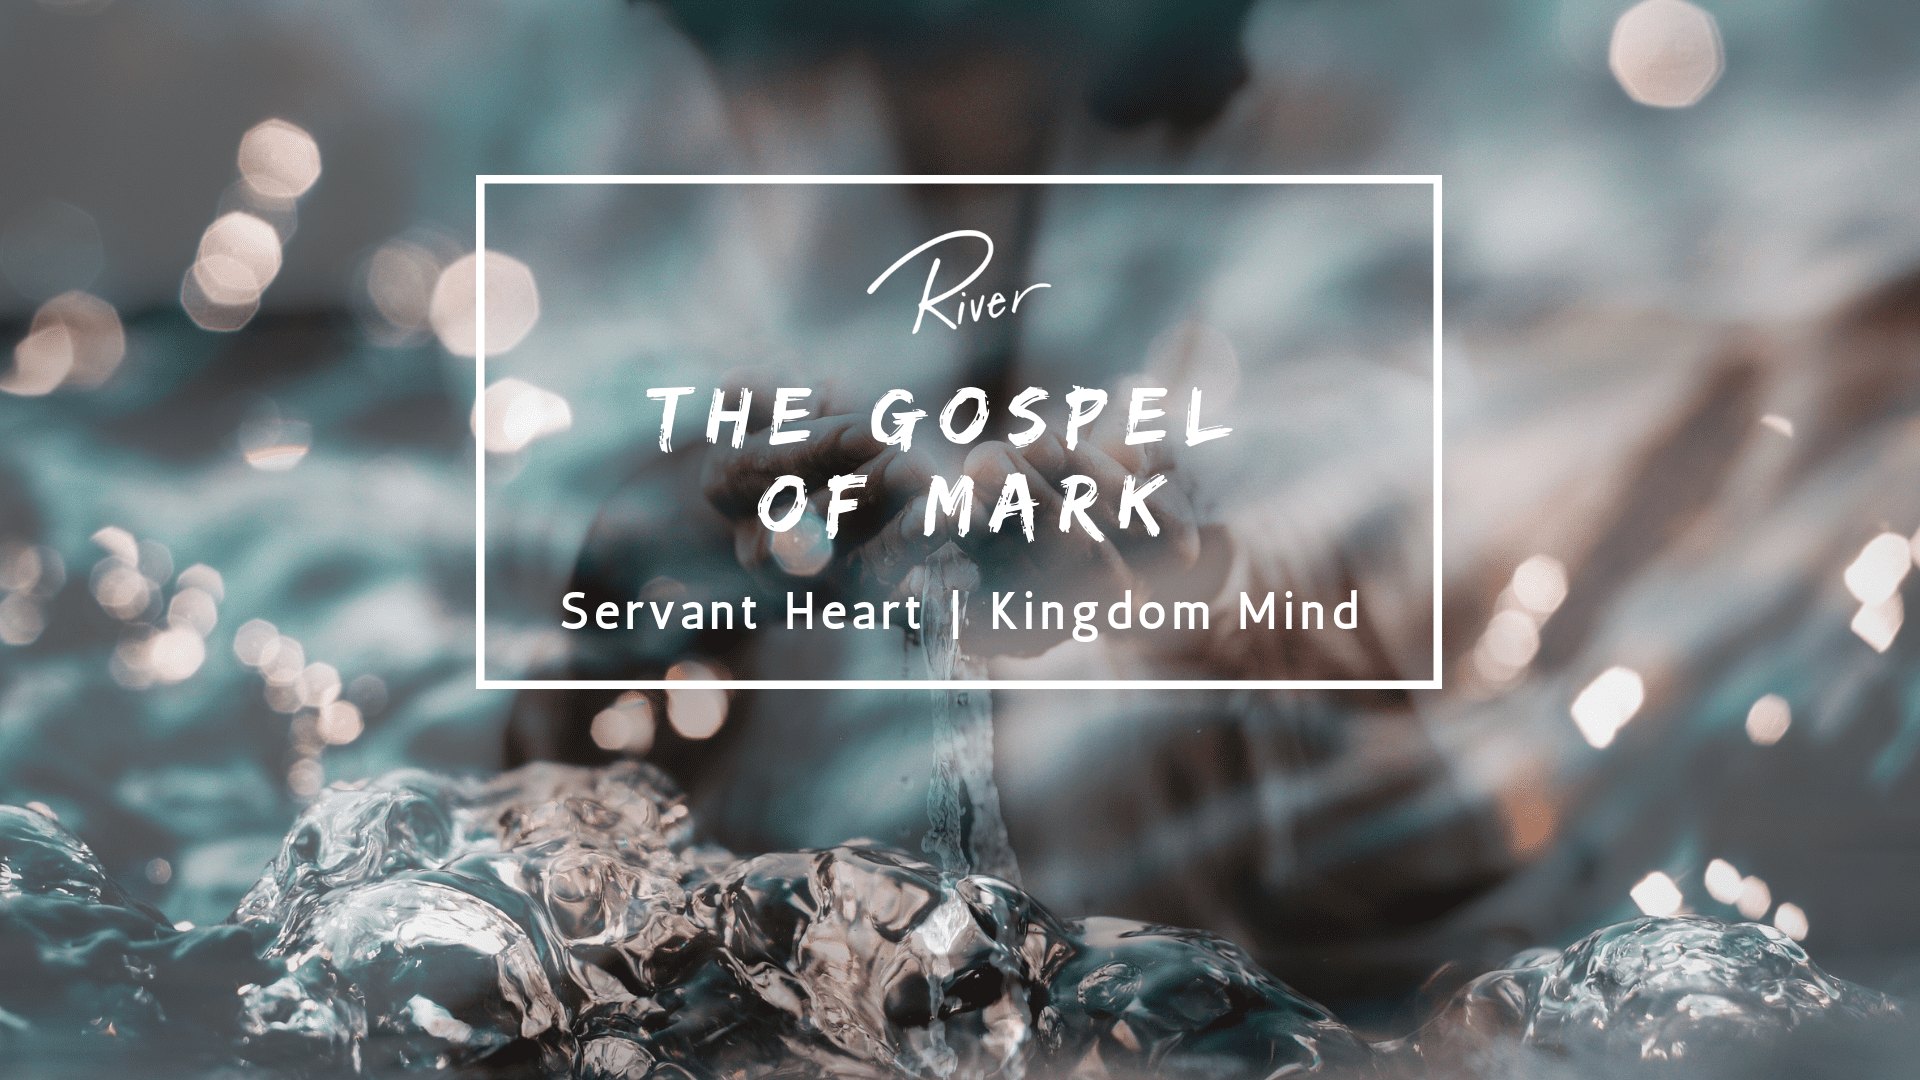 Servant Heart, Kingdom Mind – Mark 1:14-45